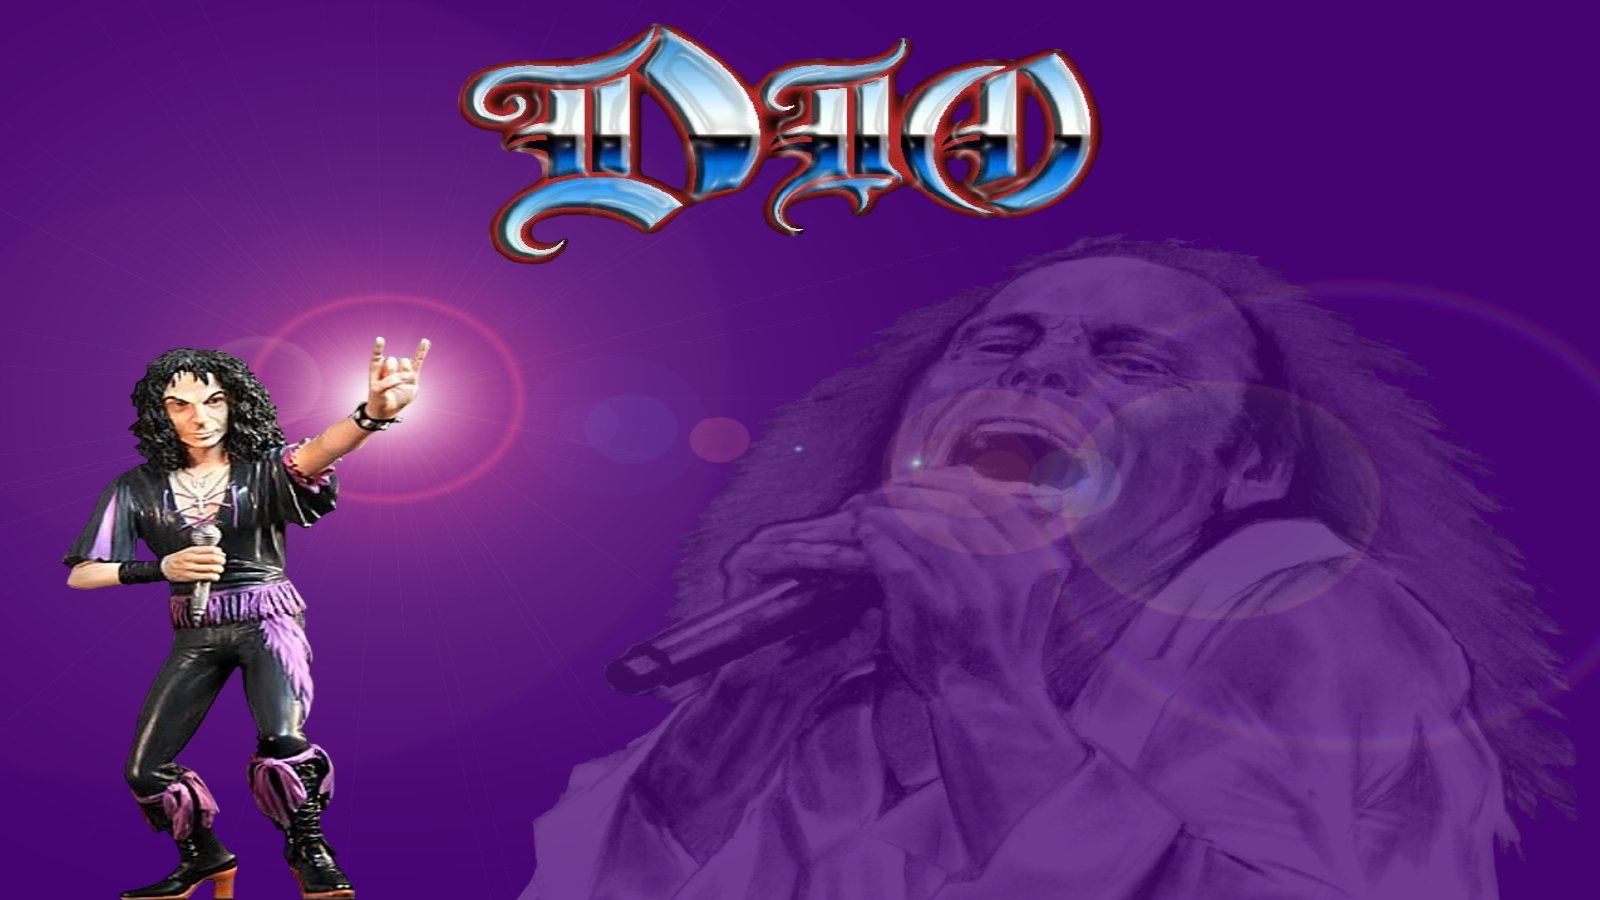 Ronnie James Dio Wallpaper and Background Image | 1600x900 ...